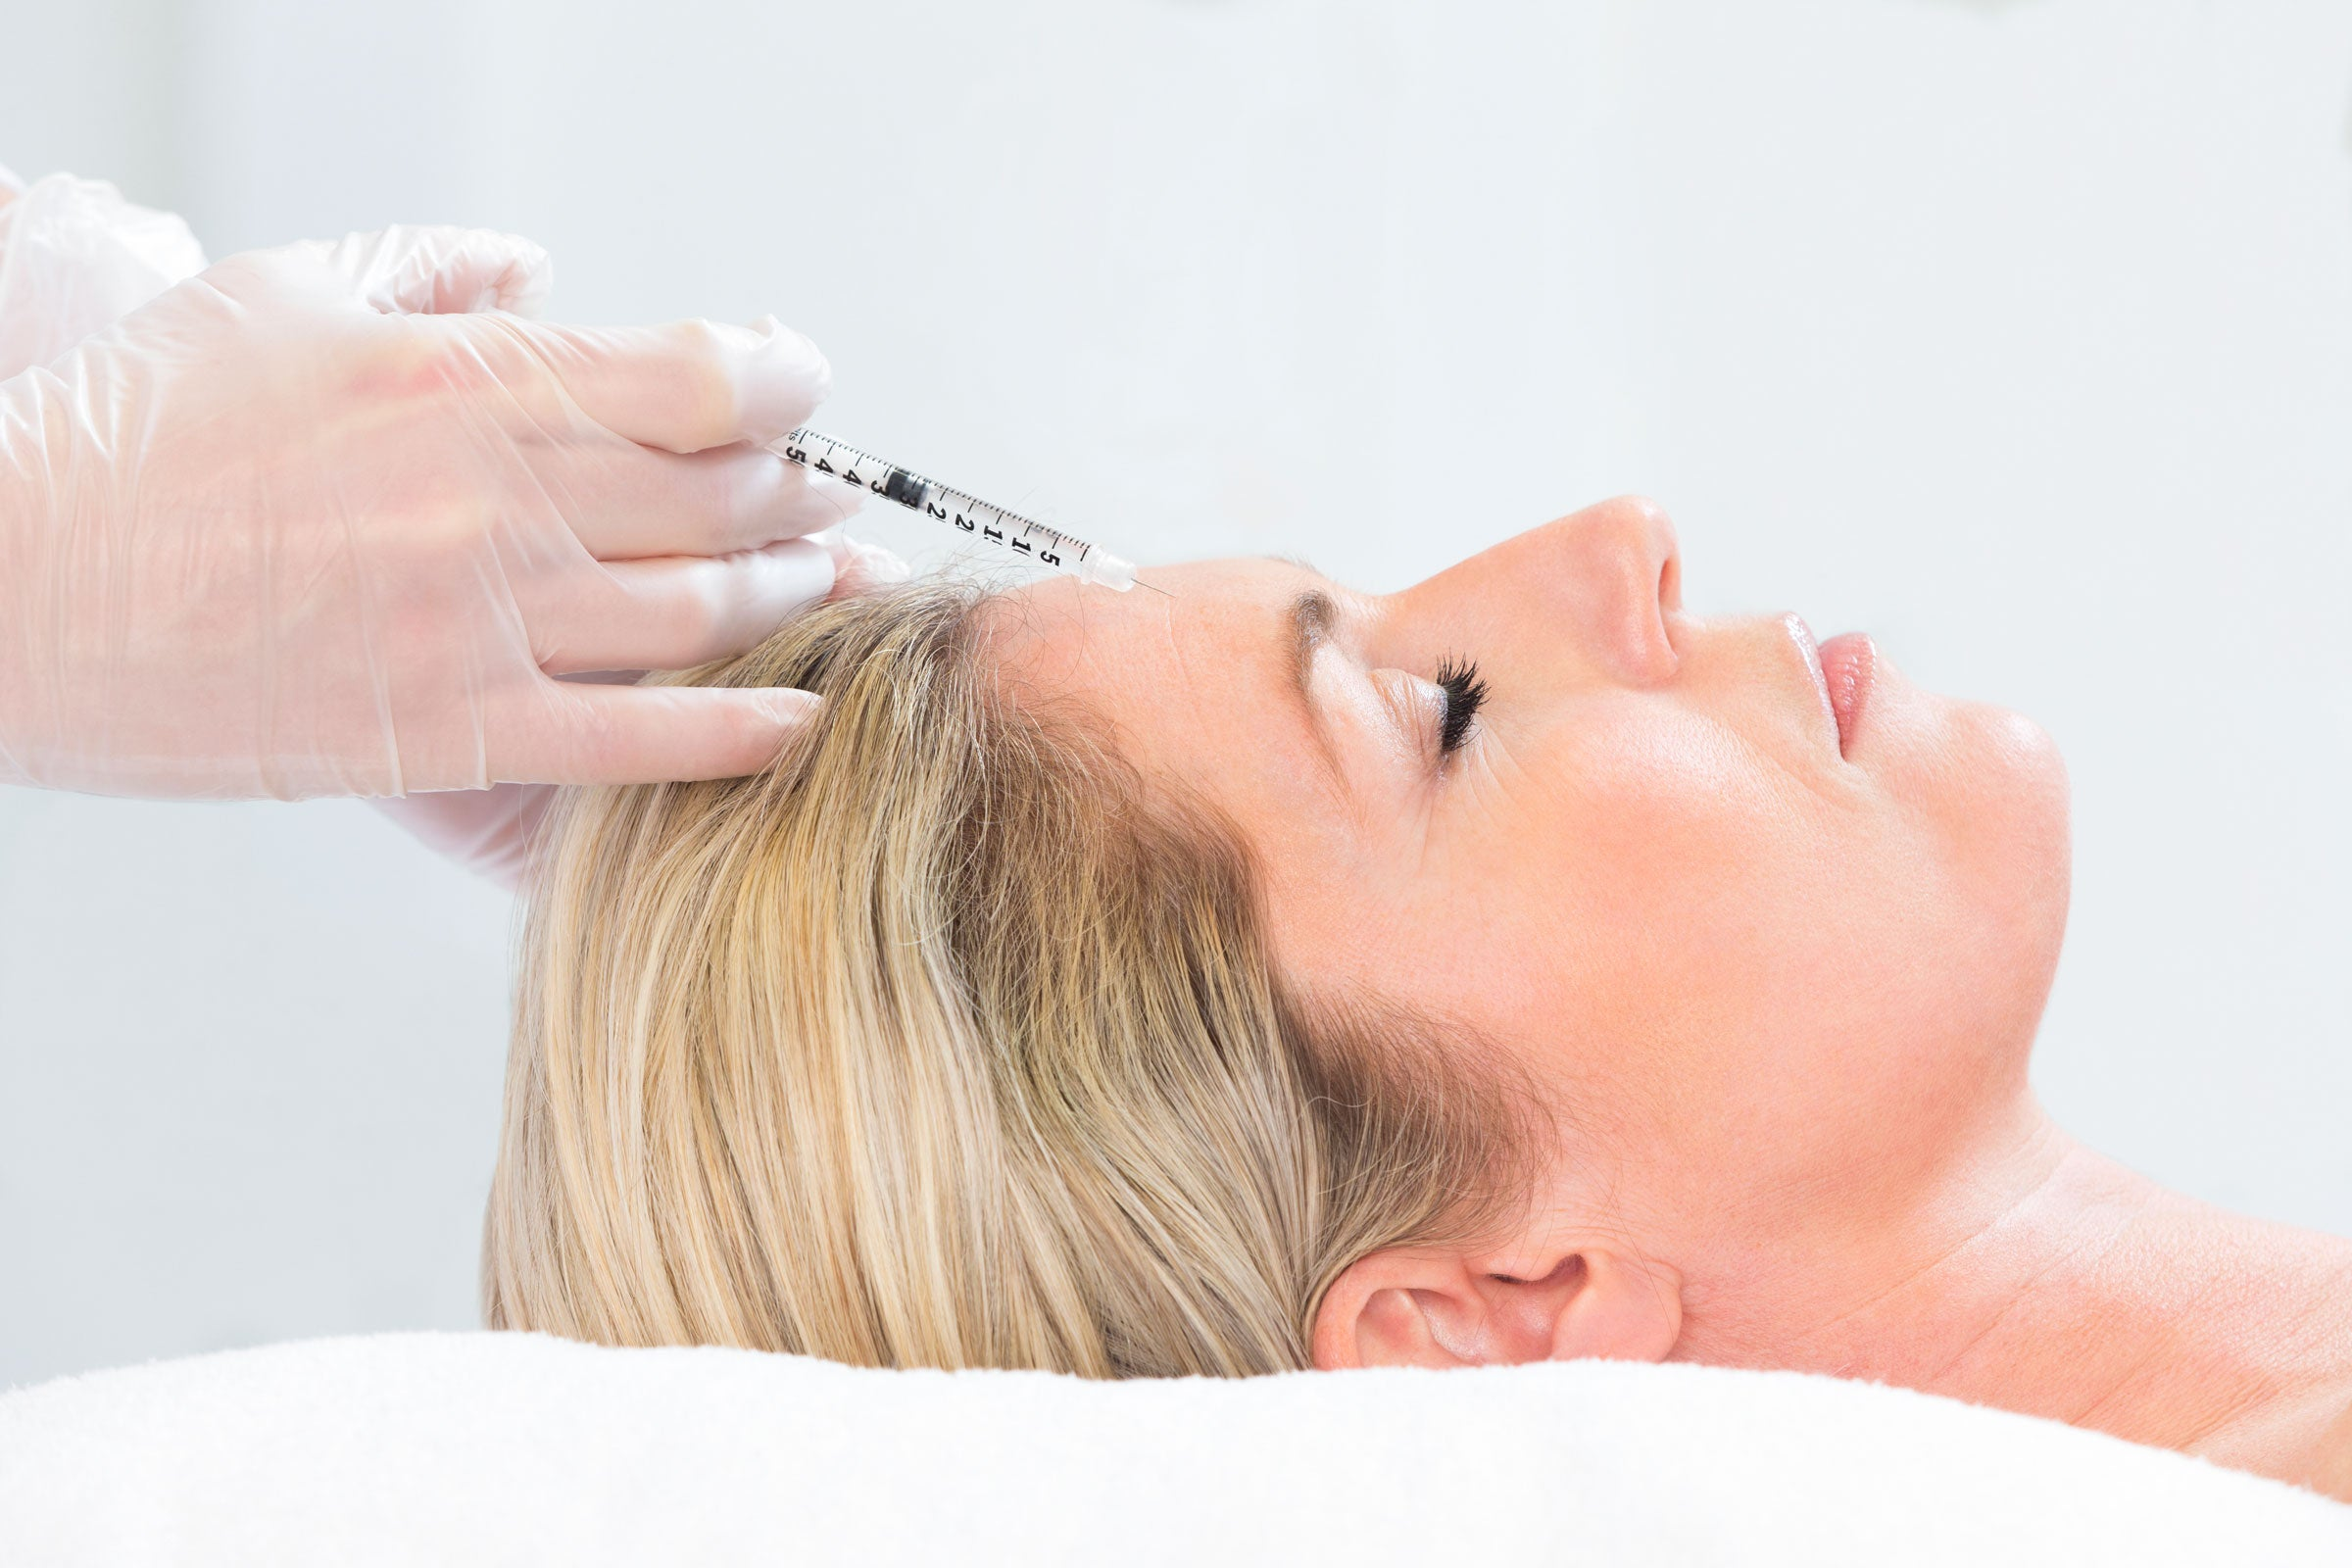 What Runners Need to Know About Botox